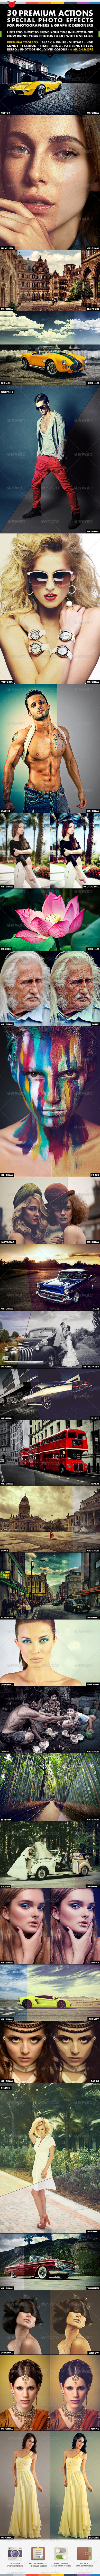 GraphicRiver 30 Premium Actions 7932772